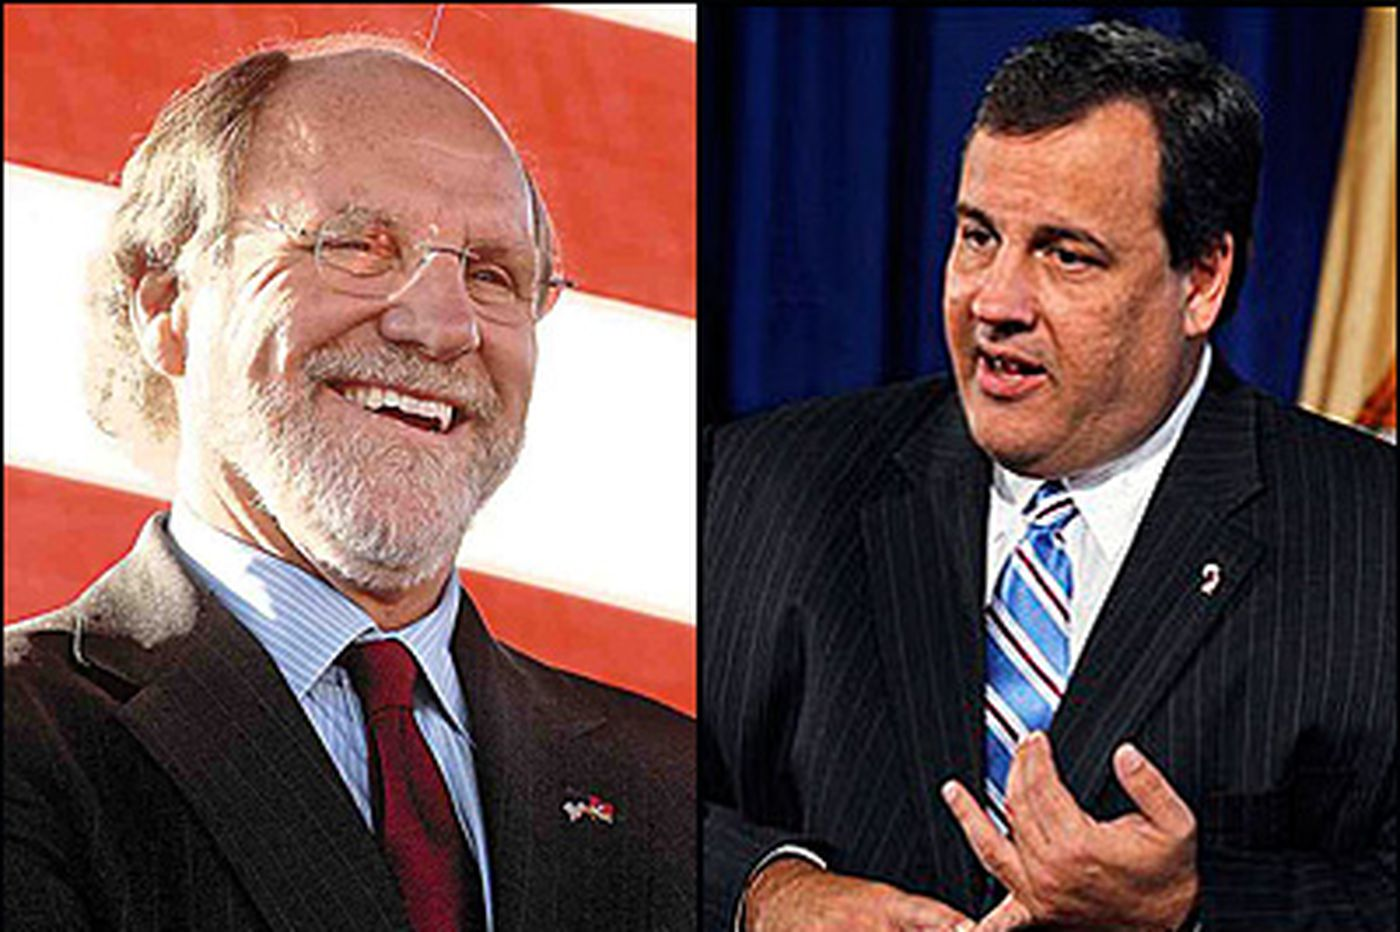 Christie administration blames Corzine on charters